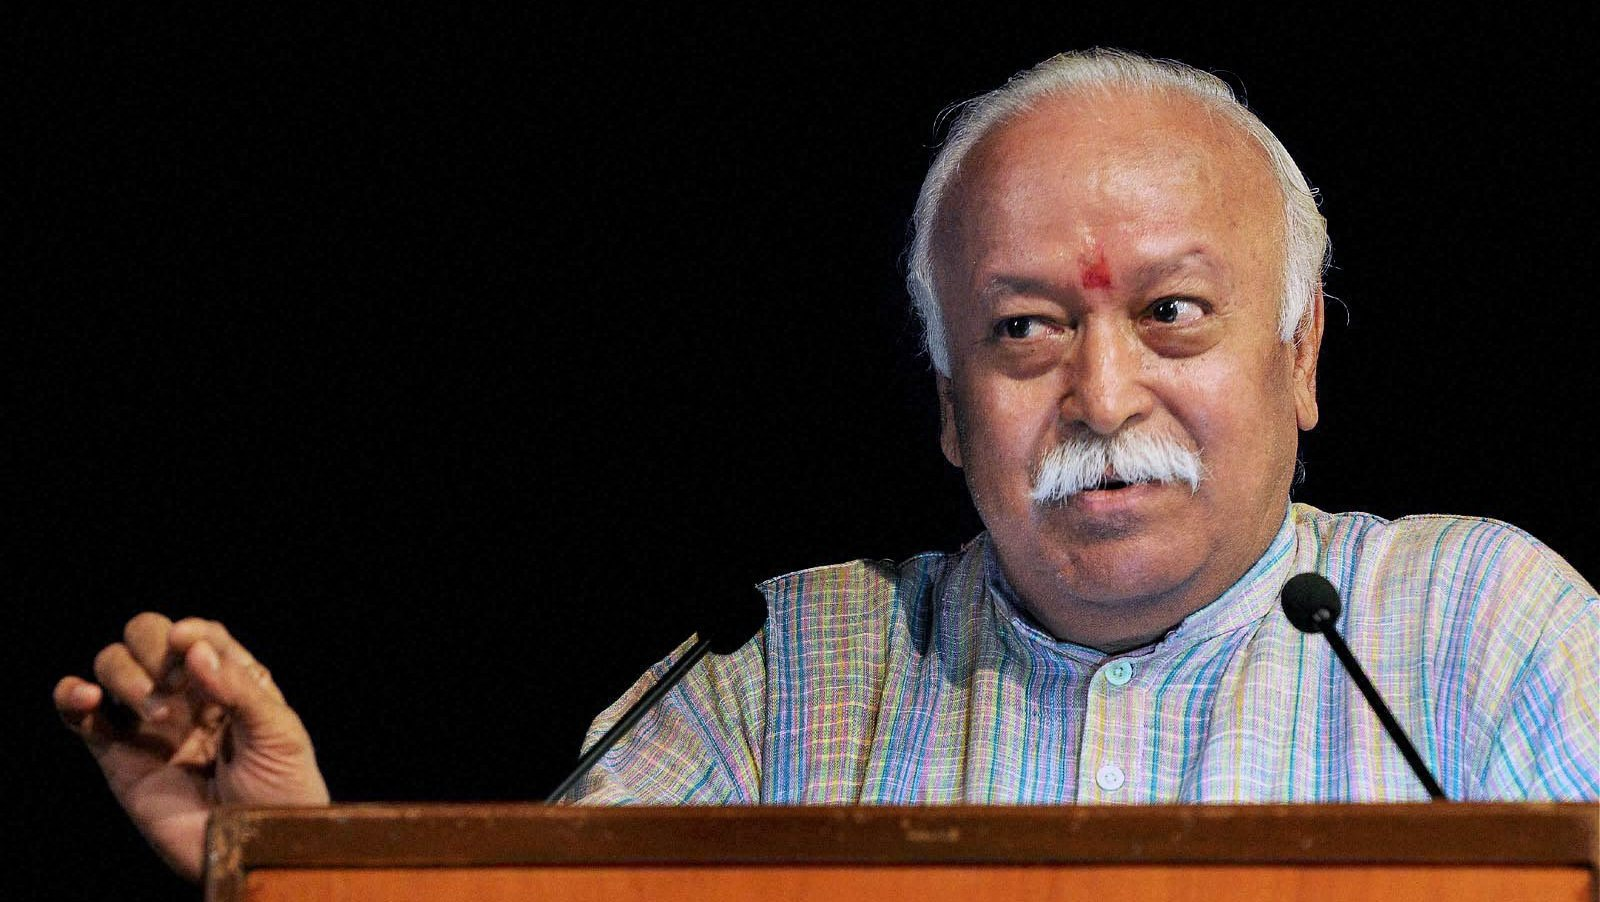 RSS Chief's Call for National Cow Protection Law Echoes a Familiar Pattern